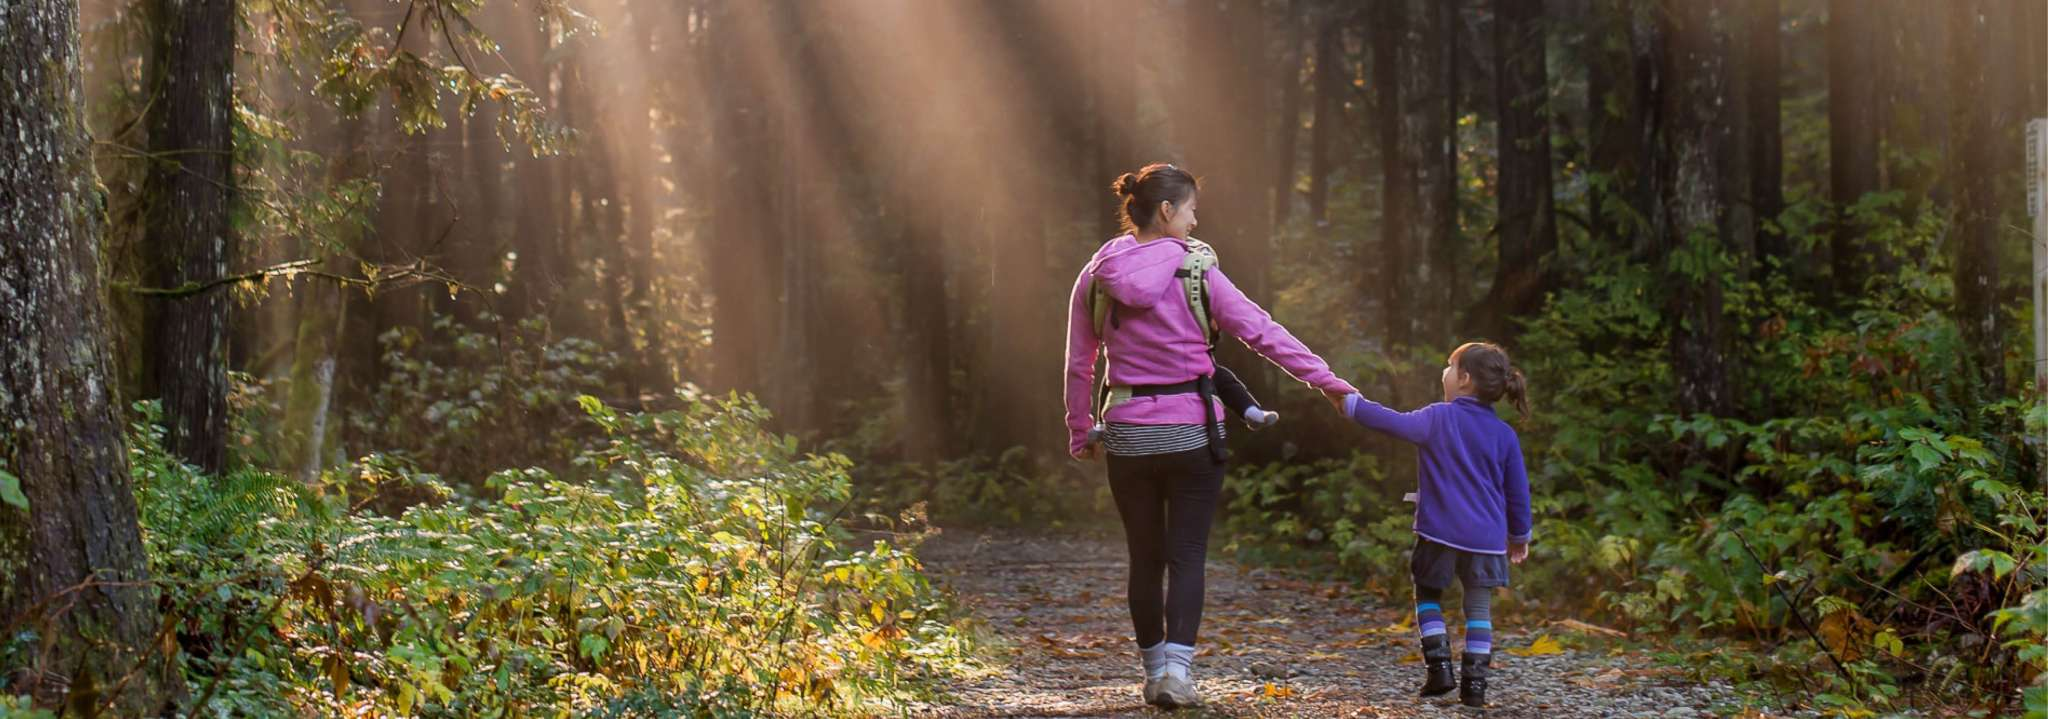 Getting outside for a walk while socially distancing is so important!